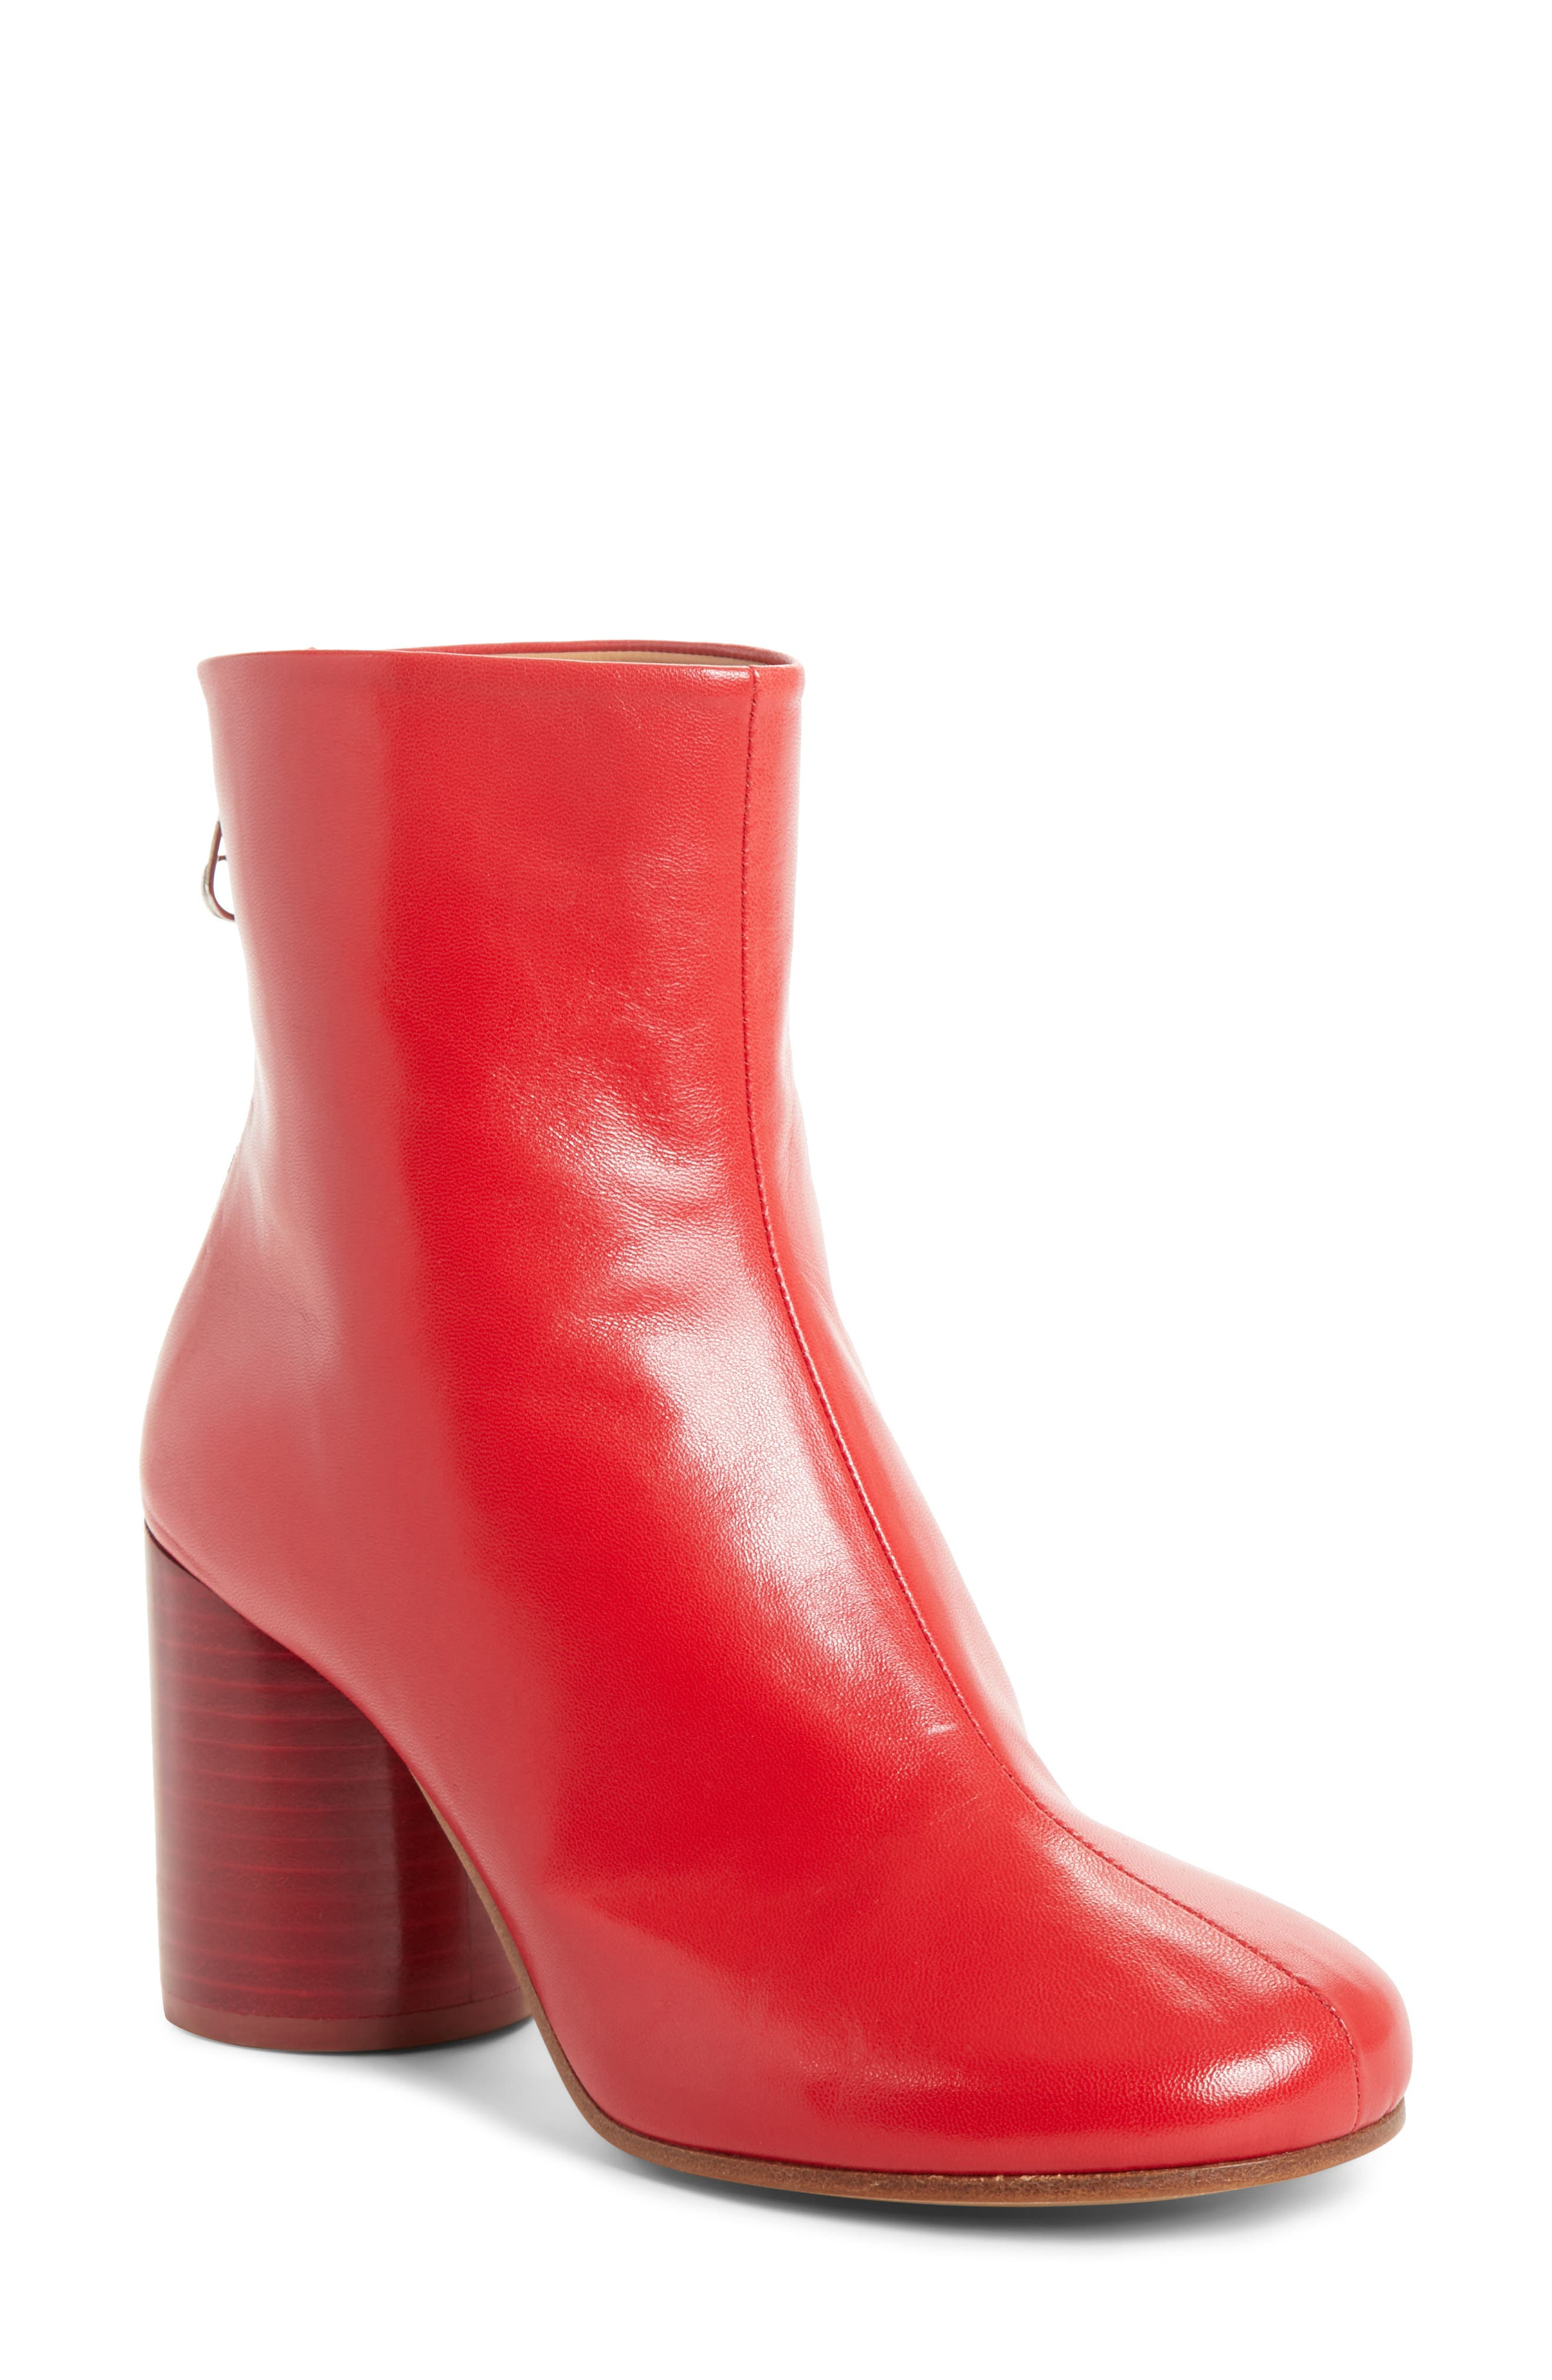 Round Heel Ankle Boot,                             Main thumbnail 1, color,                             600